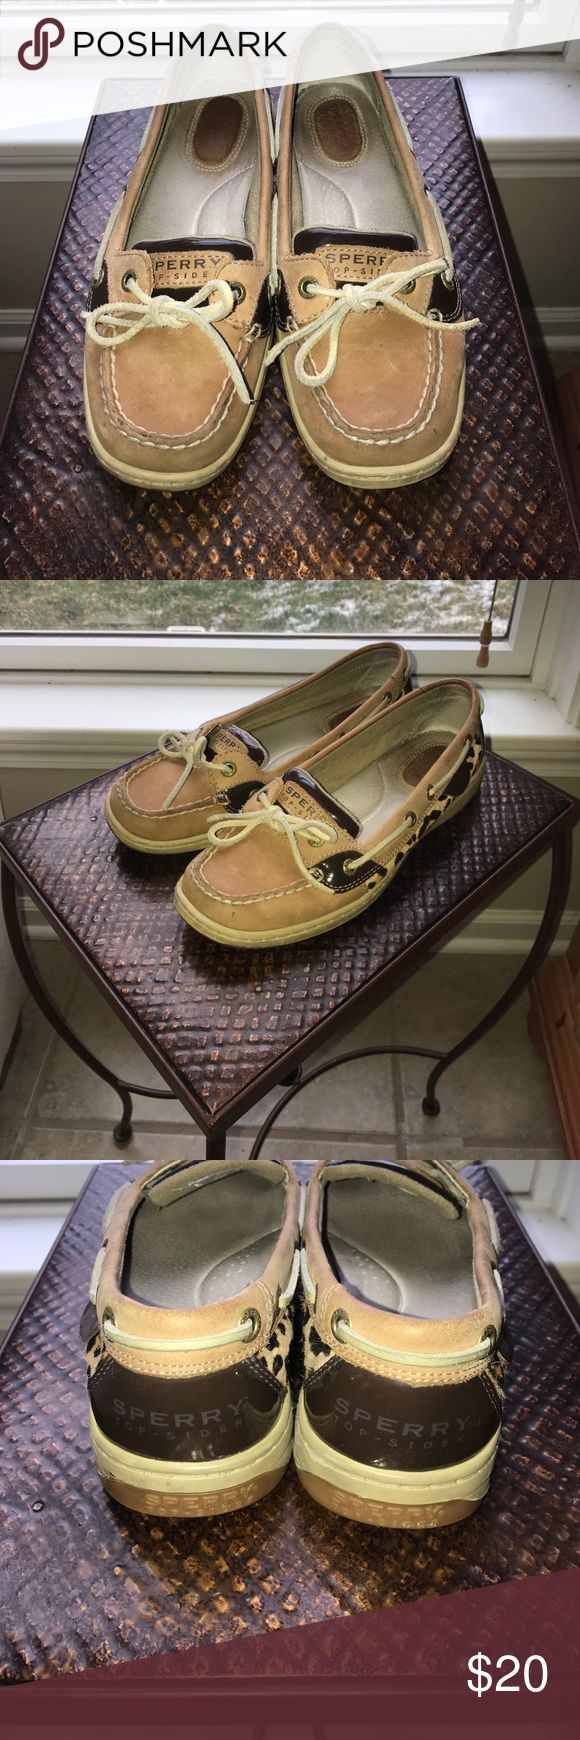 Sperry Women's Angelfish Shoe Leopard Print Lightly worn, like new. Leather in excellent condition, original suede laces. From a nonsmoking household. Sperry Top-Sider Shoes Flats & Loafers